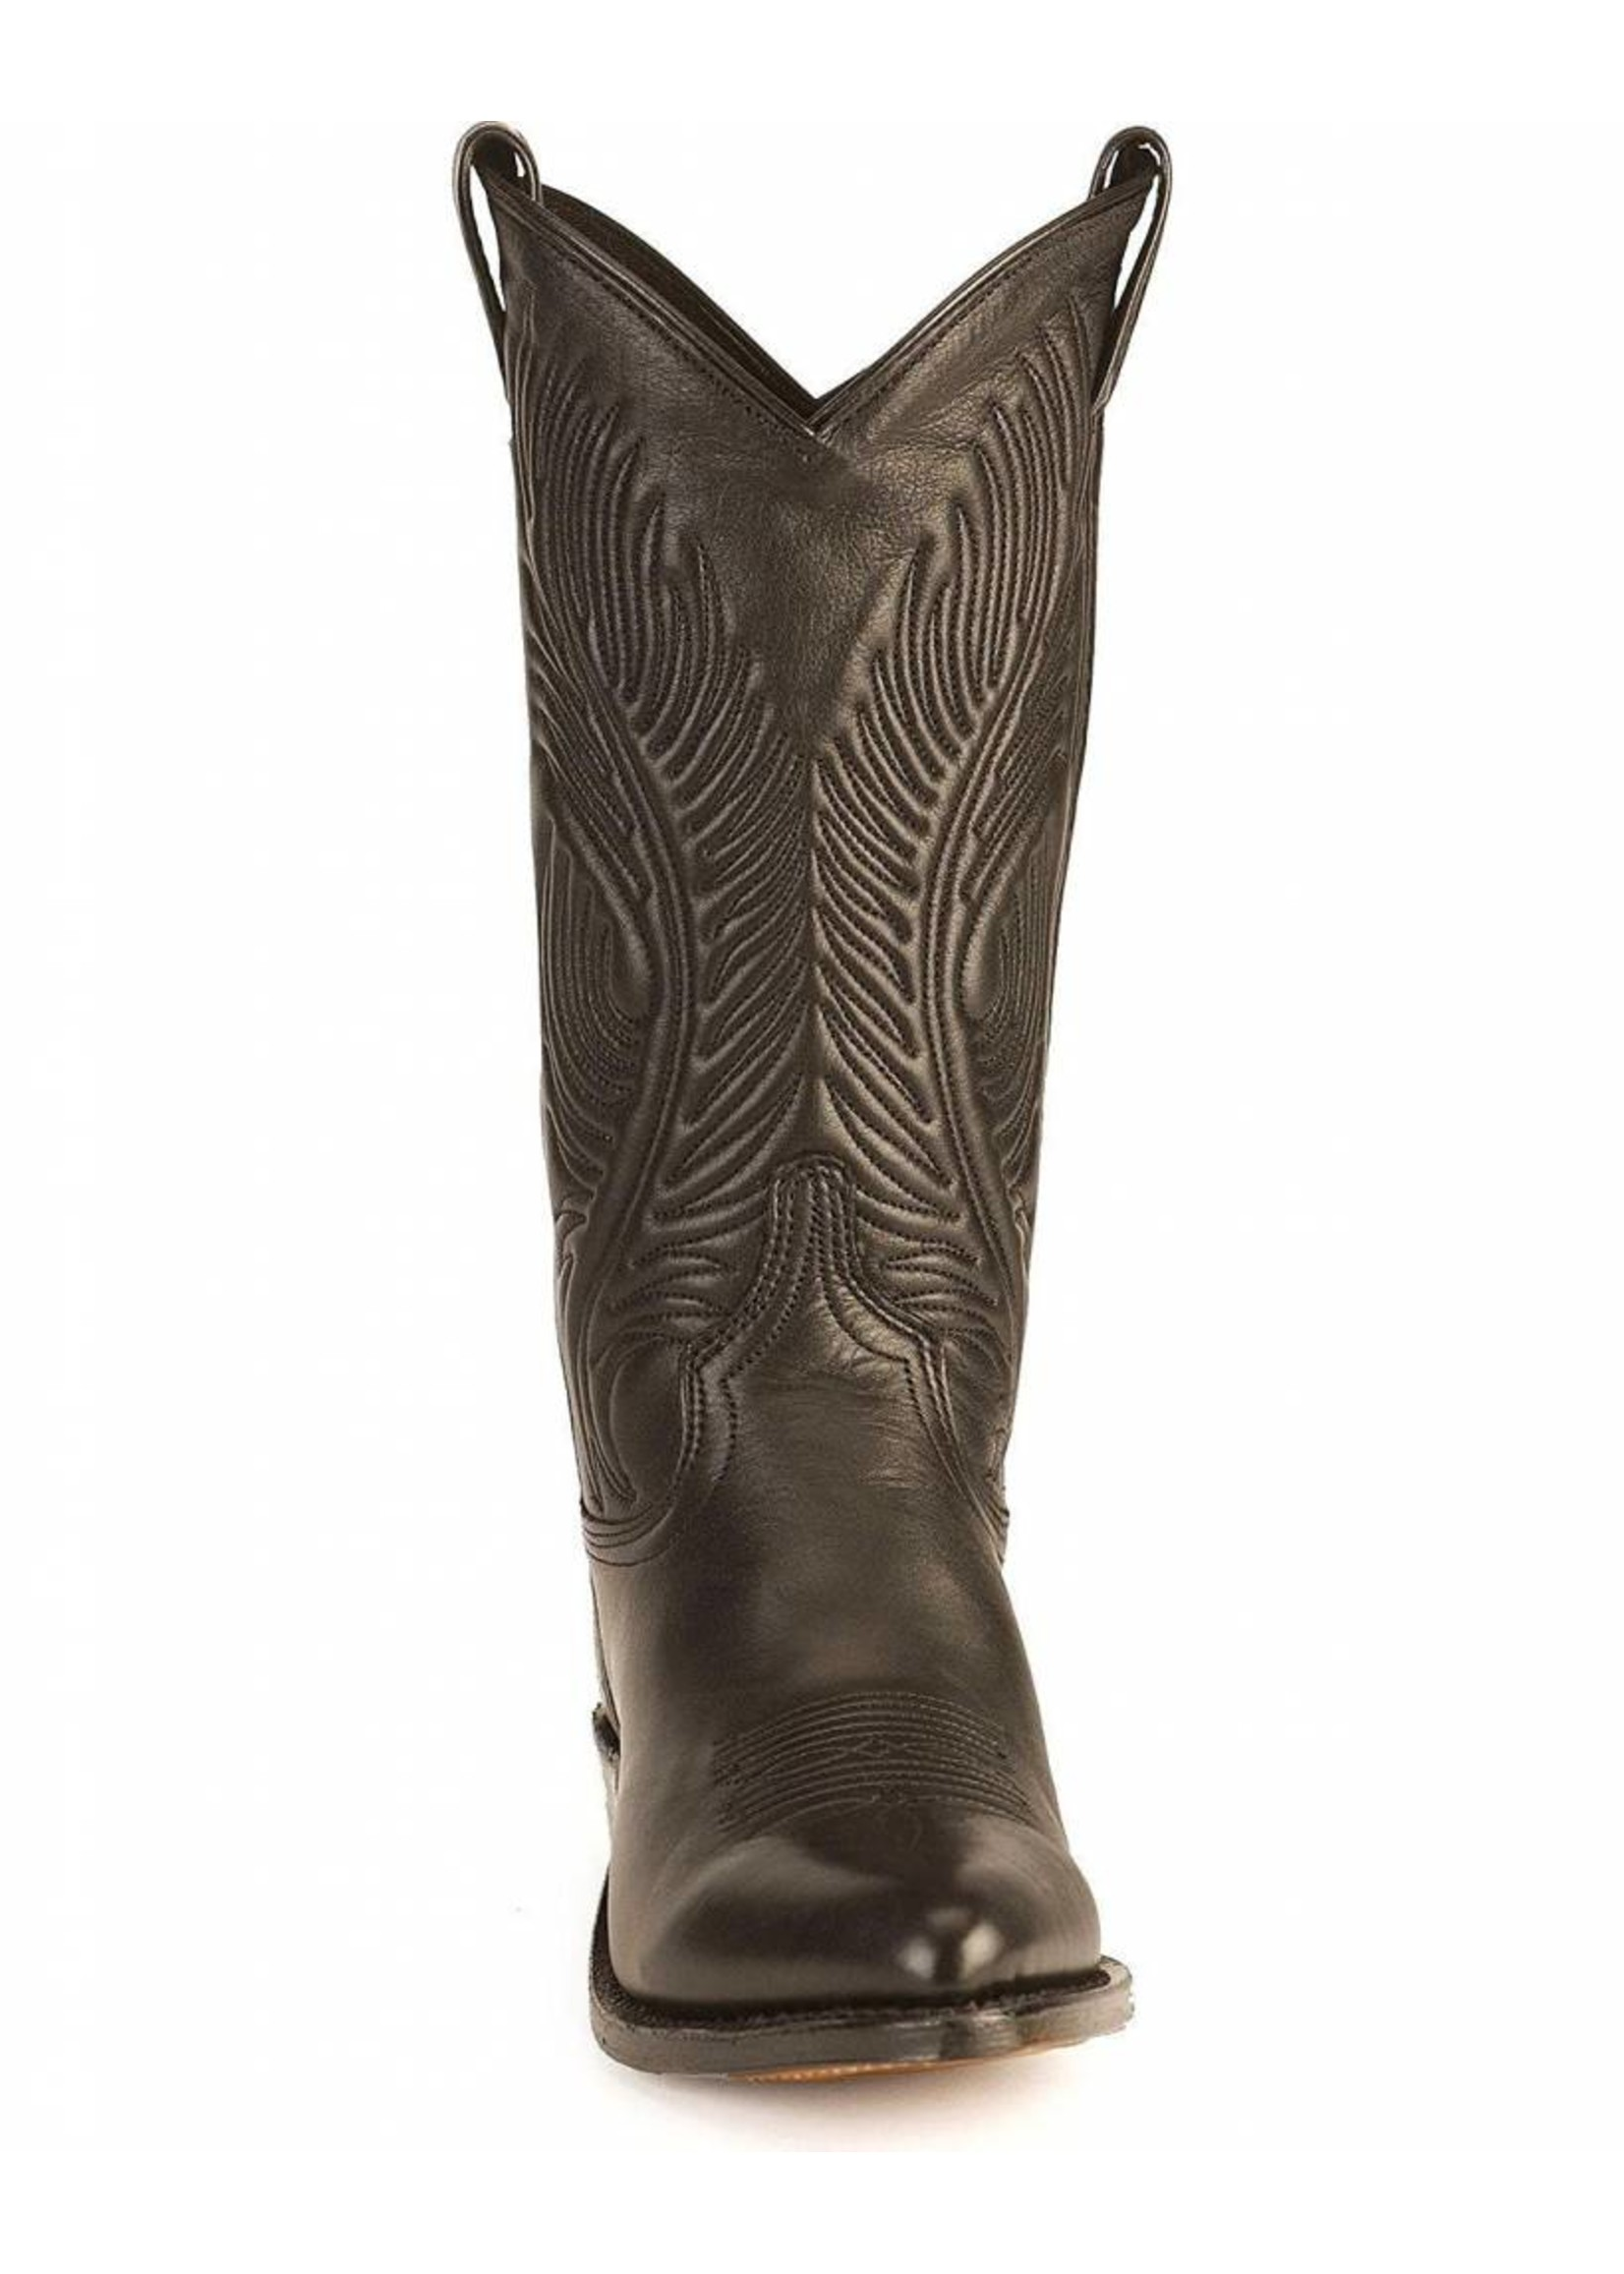 Abilene Women's Cowhide Cowgirl Boot Pointed Toe - 9052